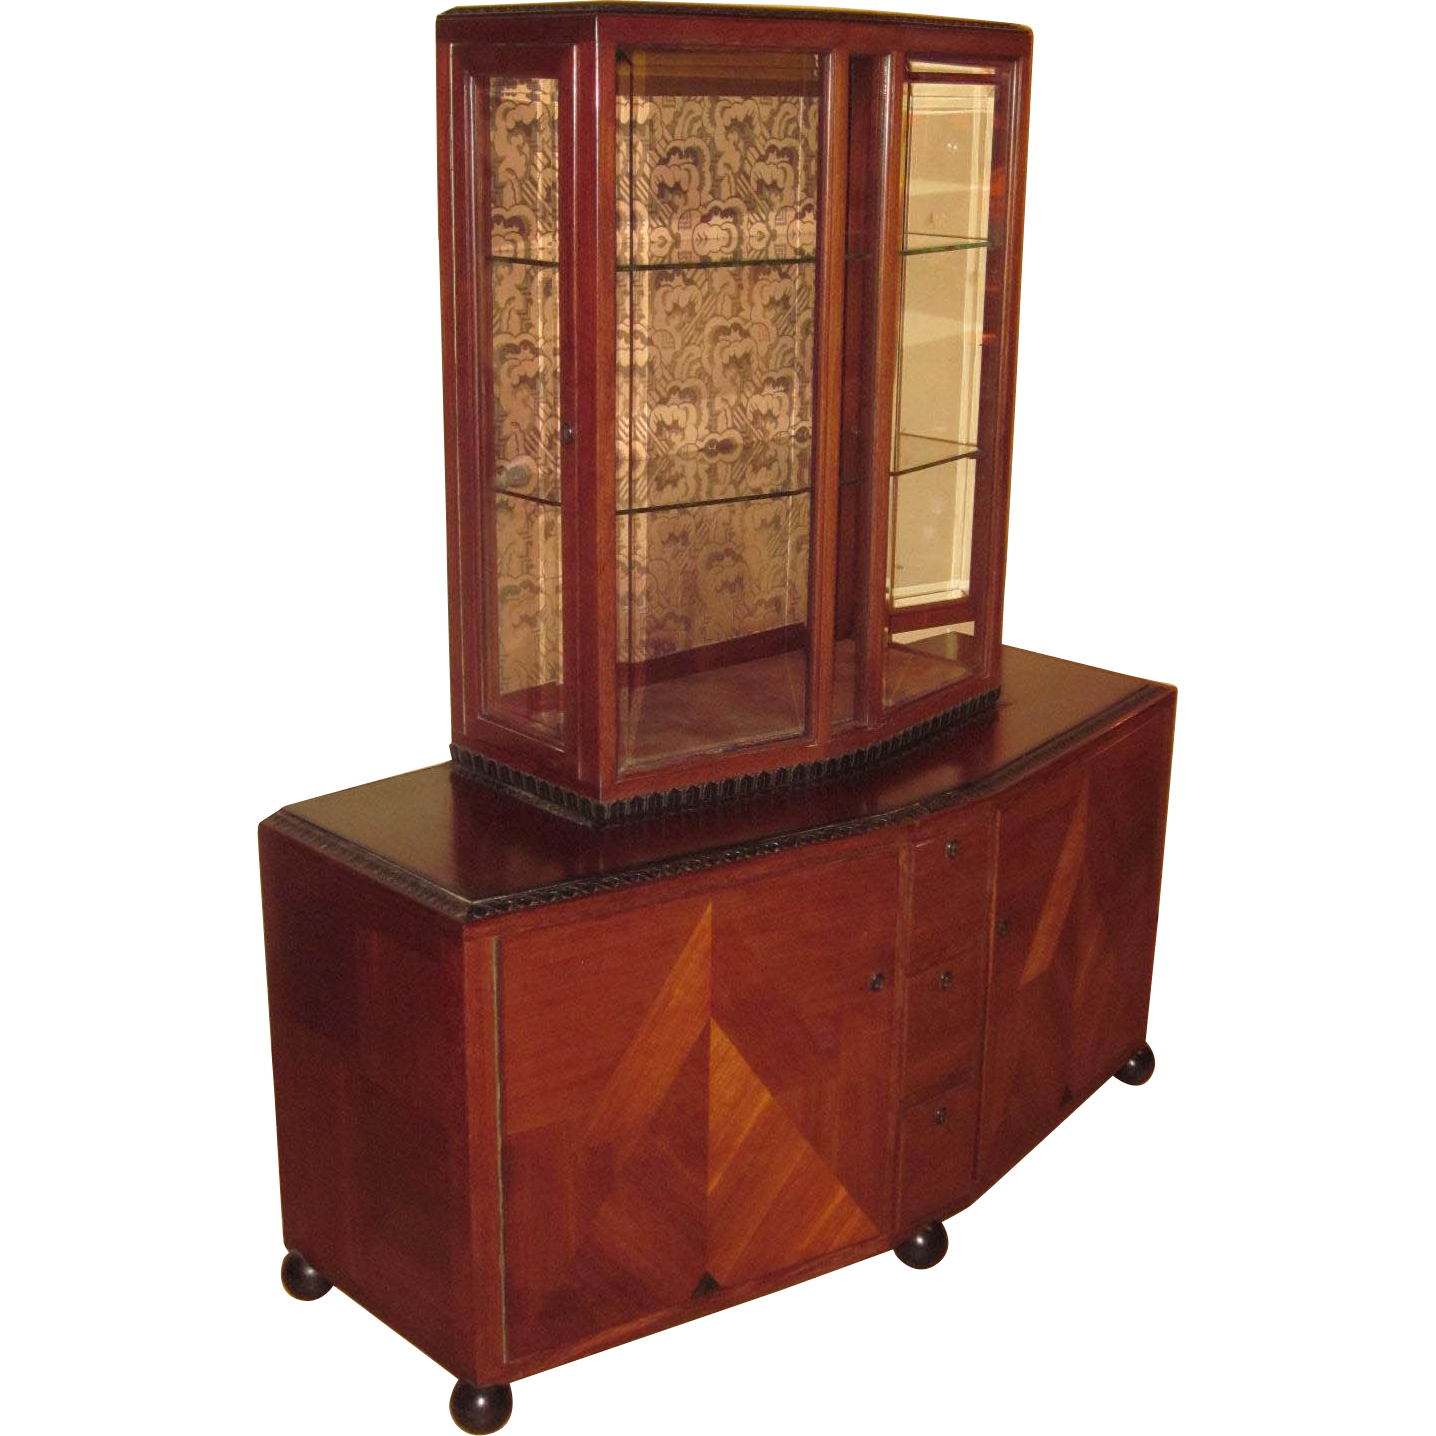 Clement rousseau french art deco display cabinet signed for Art deco furniture chicago